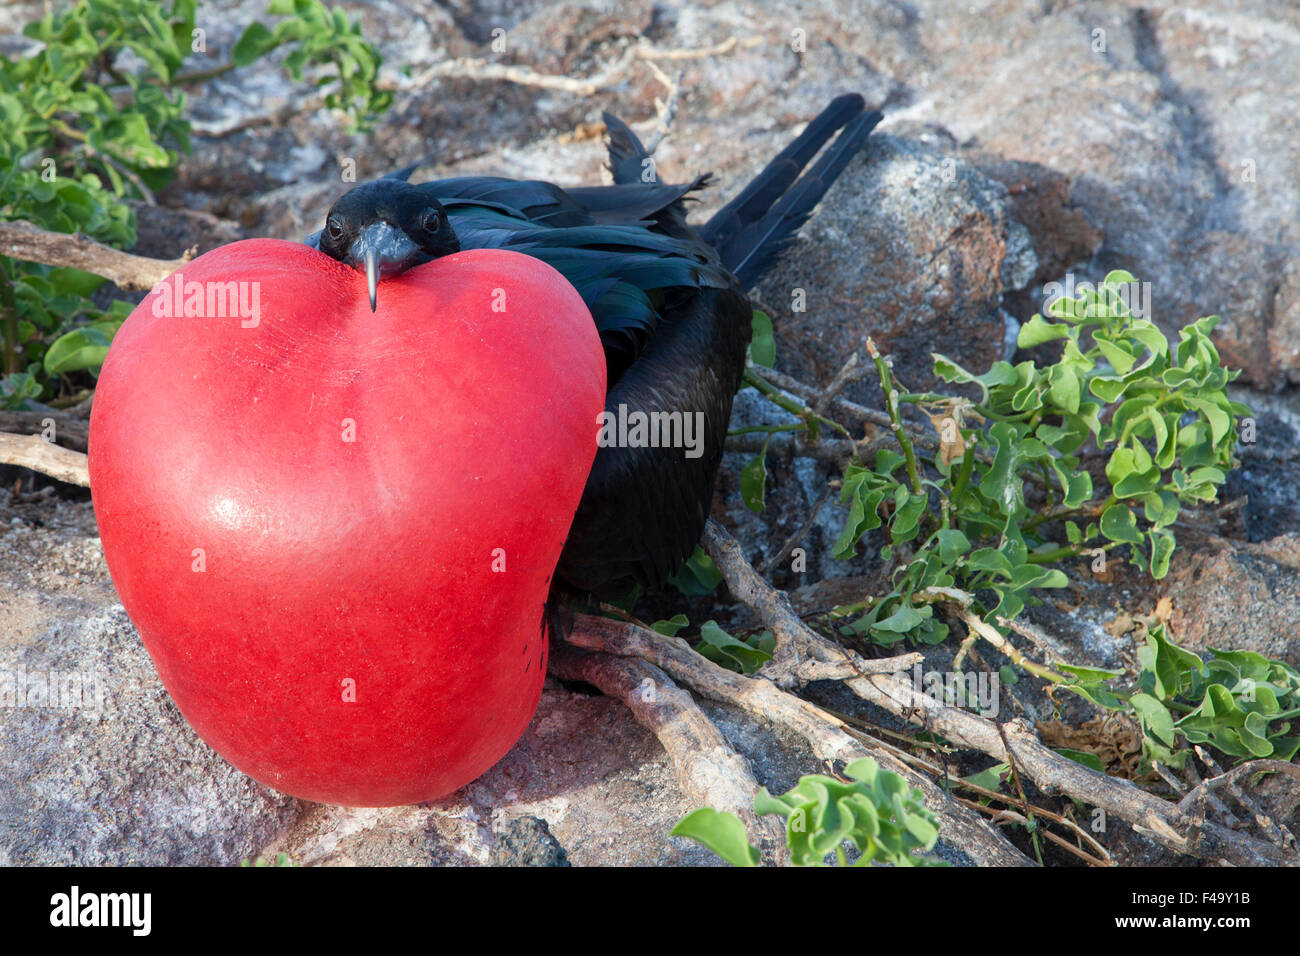 Great Frigatebird (Fregata minor) male  at nesting colony displaying fully inflated red gular pouch during courtship - Stock Image